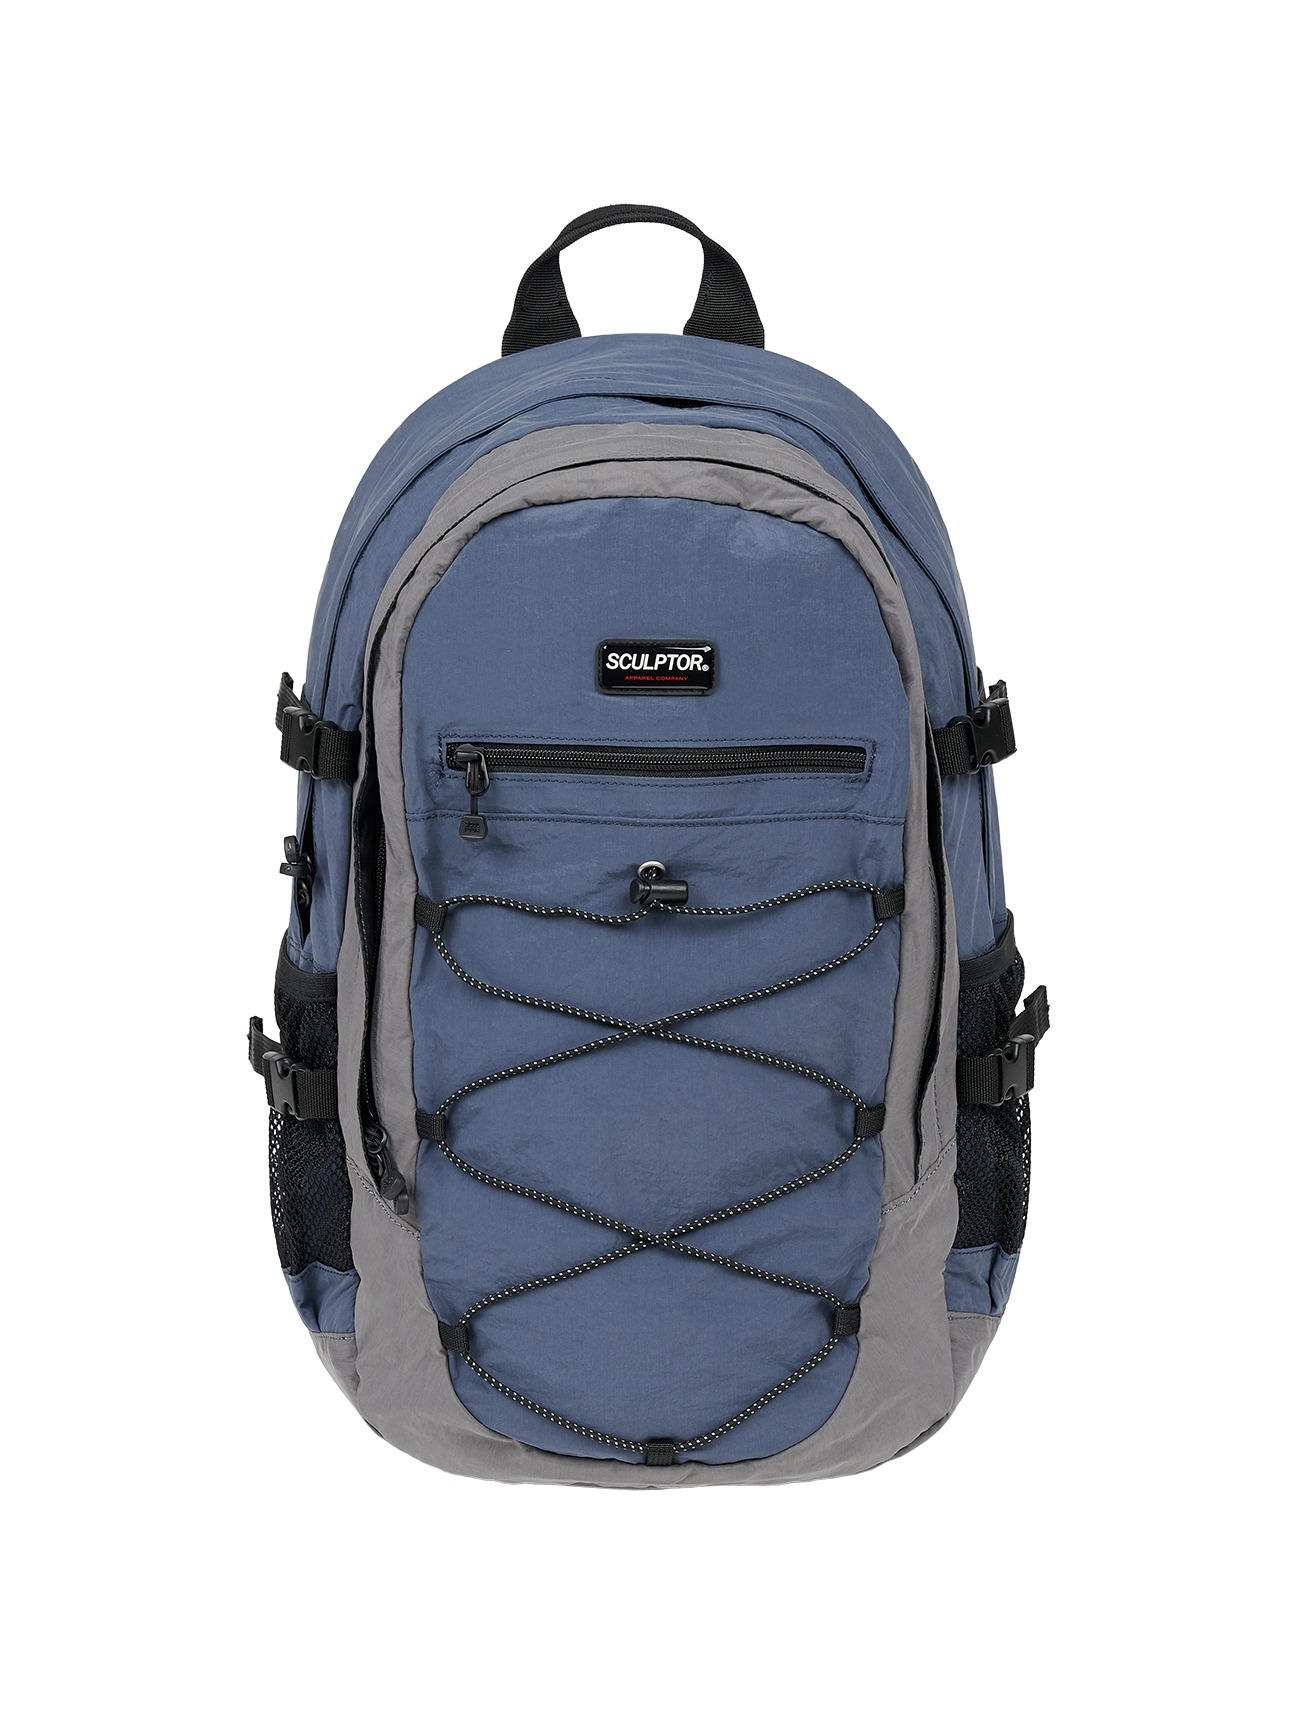 Nylon String Rucksack Blue/Gray